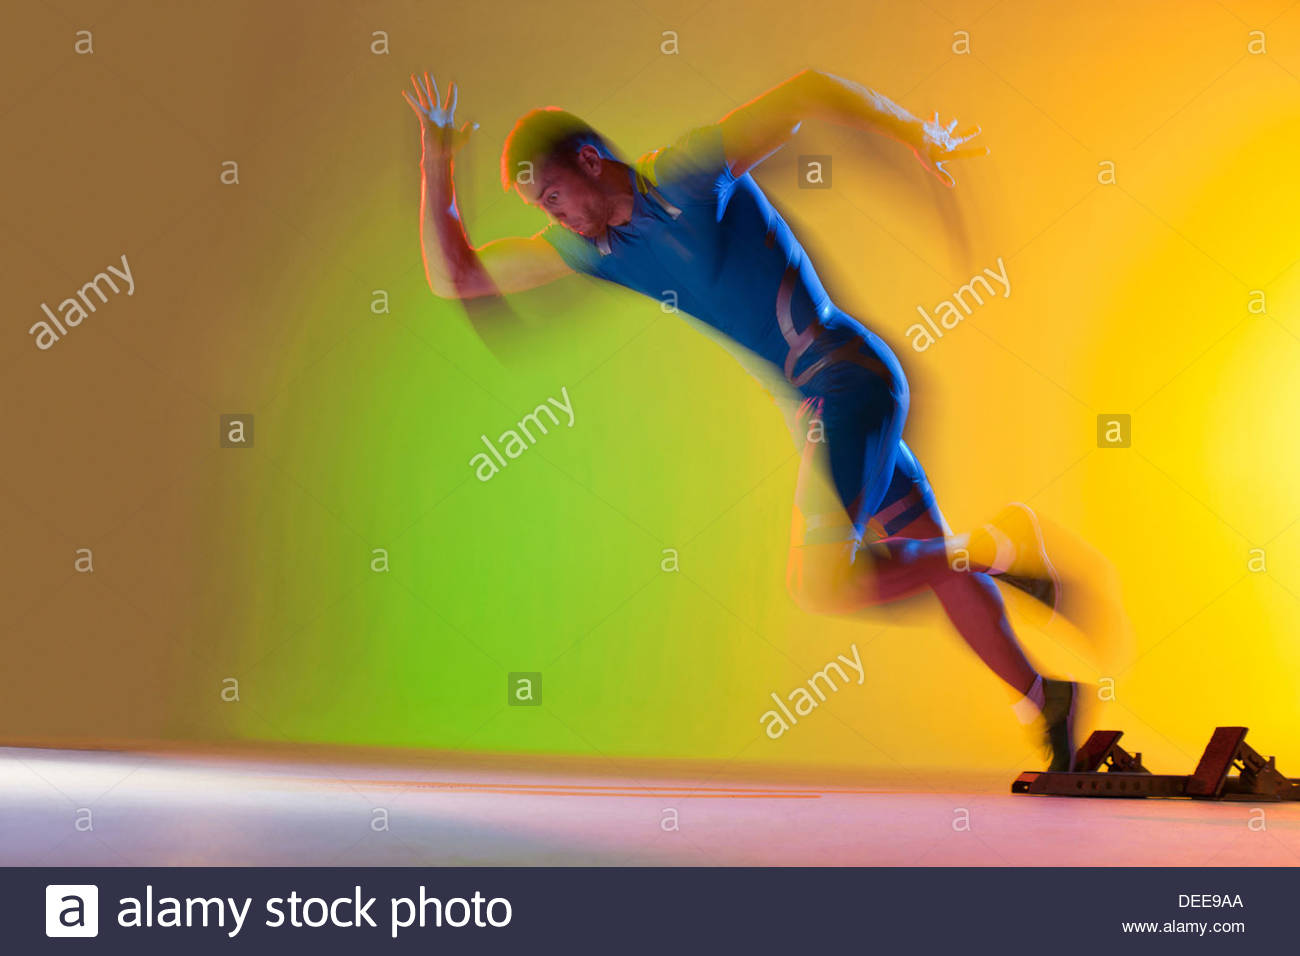 Blurred view of athlete running - Stock Image